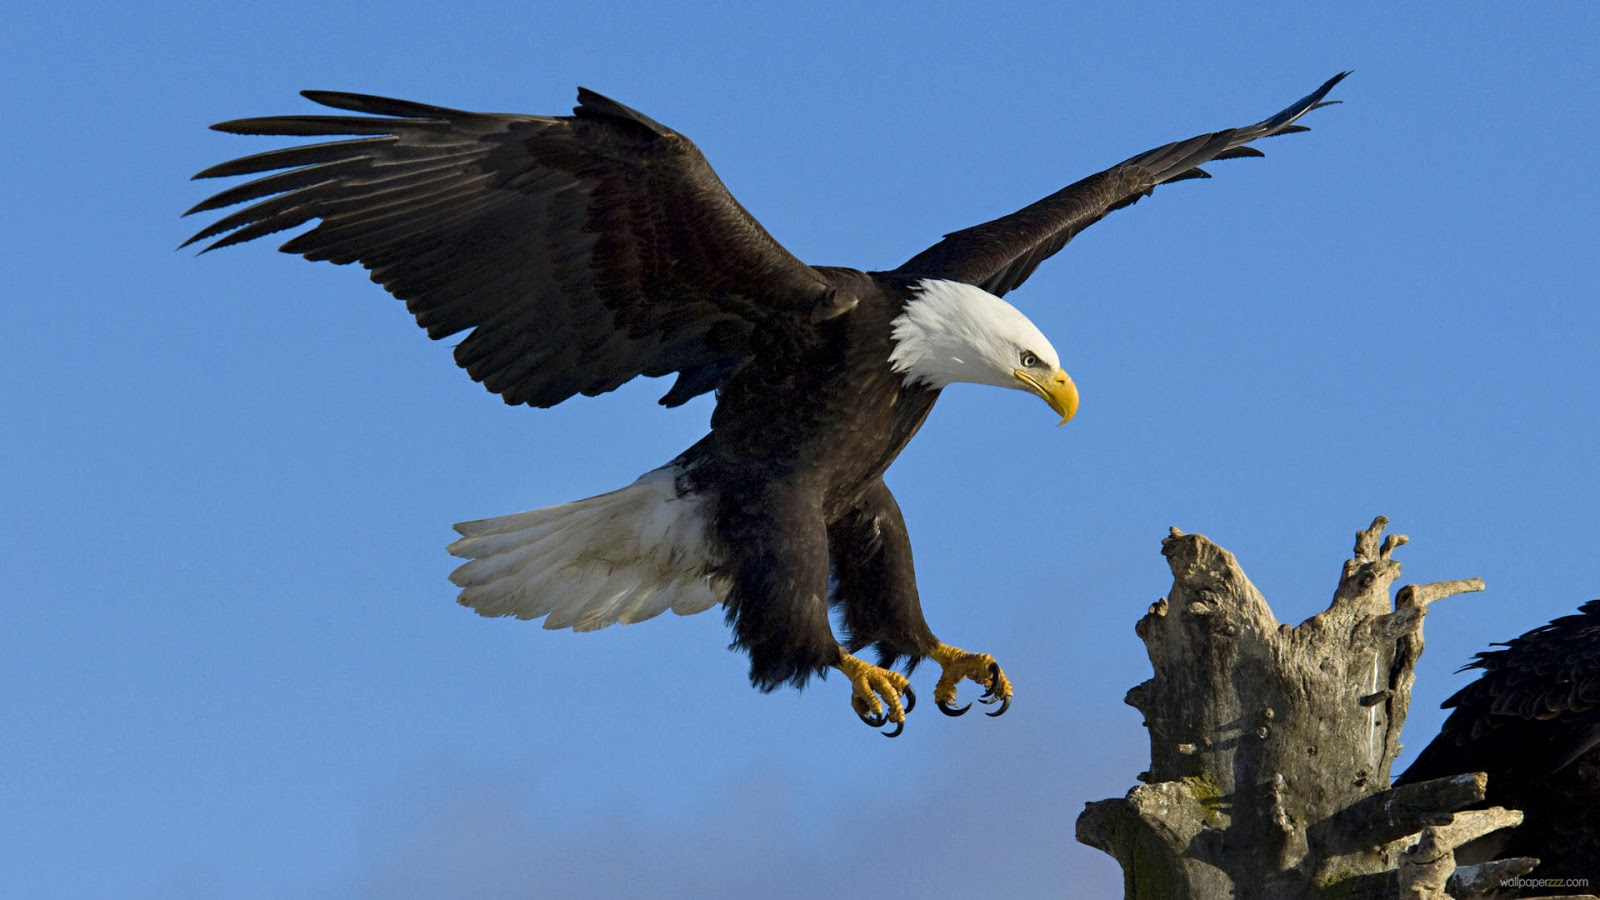 Wallpapers   Eagle Pictures   Eagle Fights   Eagle Hunt   White Eagle    White Eagle Wallpaper